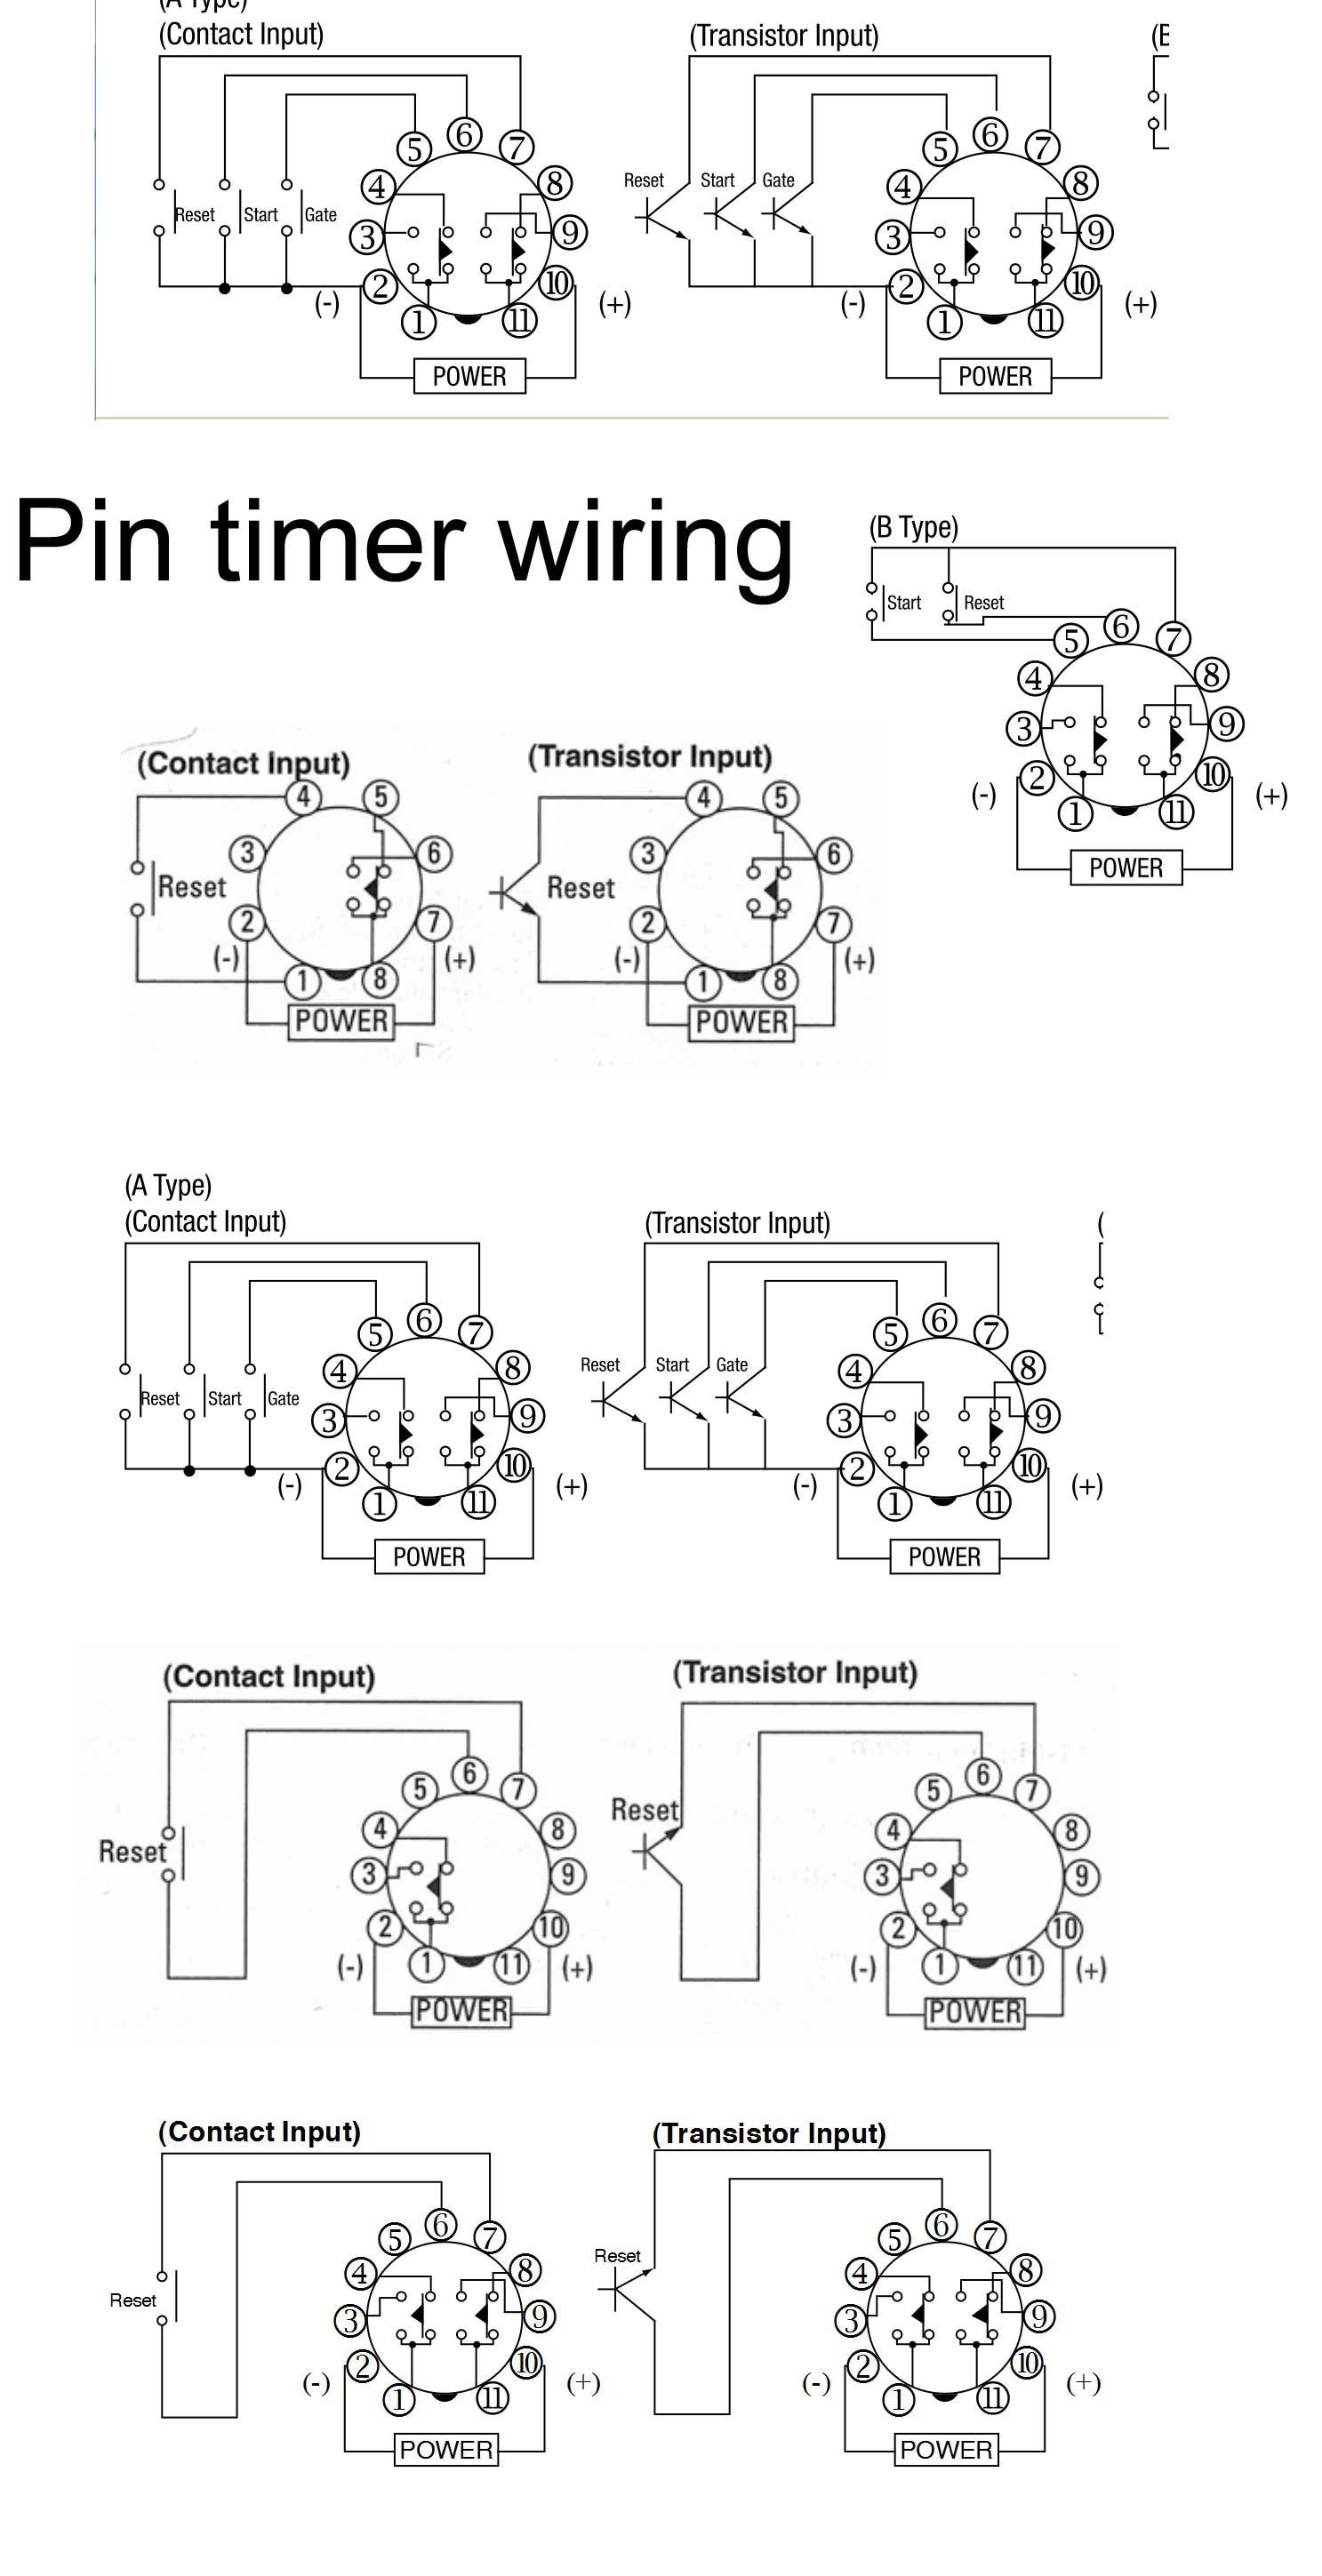 Dayton Time Delay Relay Wiring Diagram | Manual E-Books - Time Delay Relay Wiring Diagram